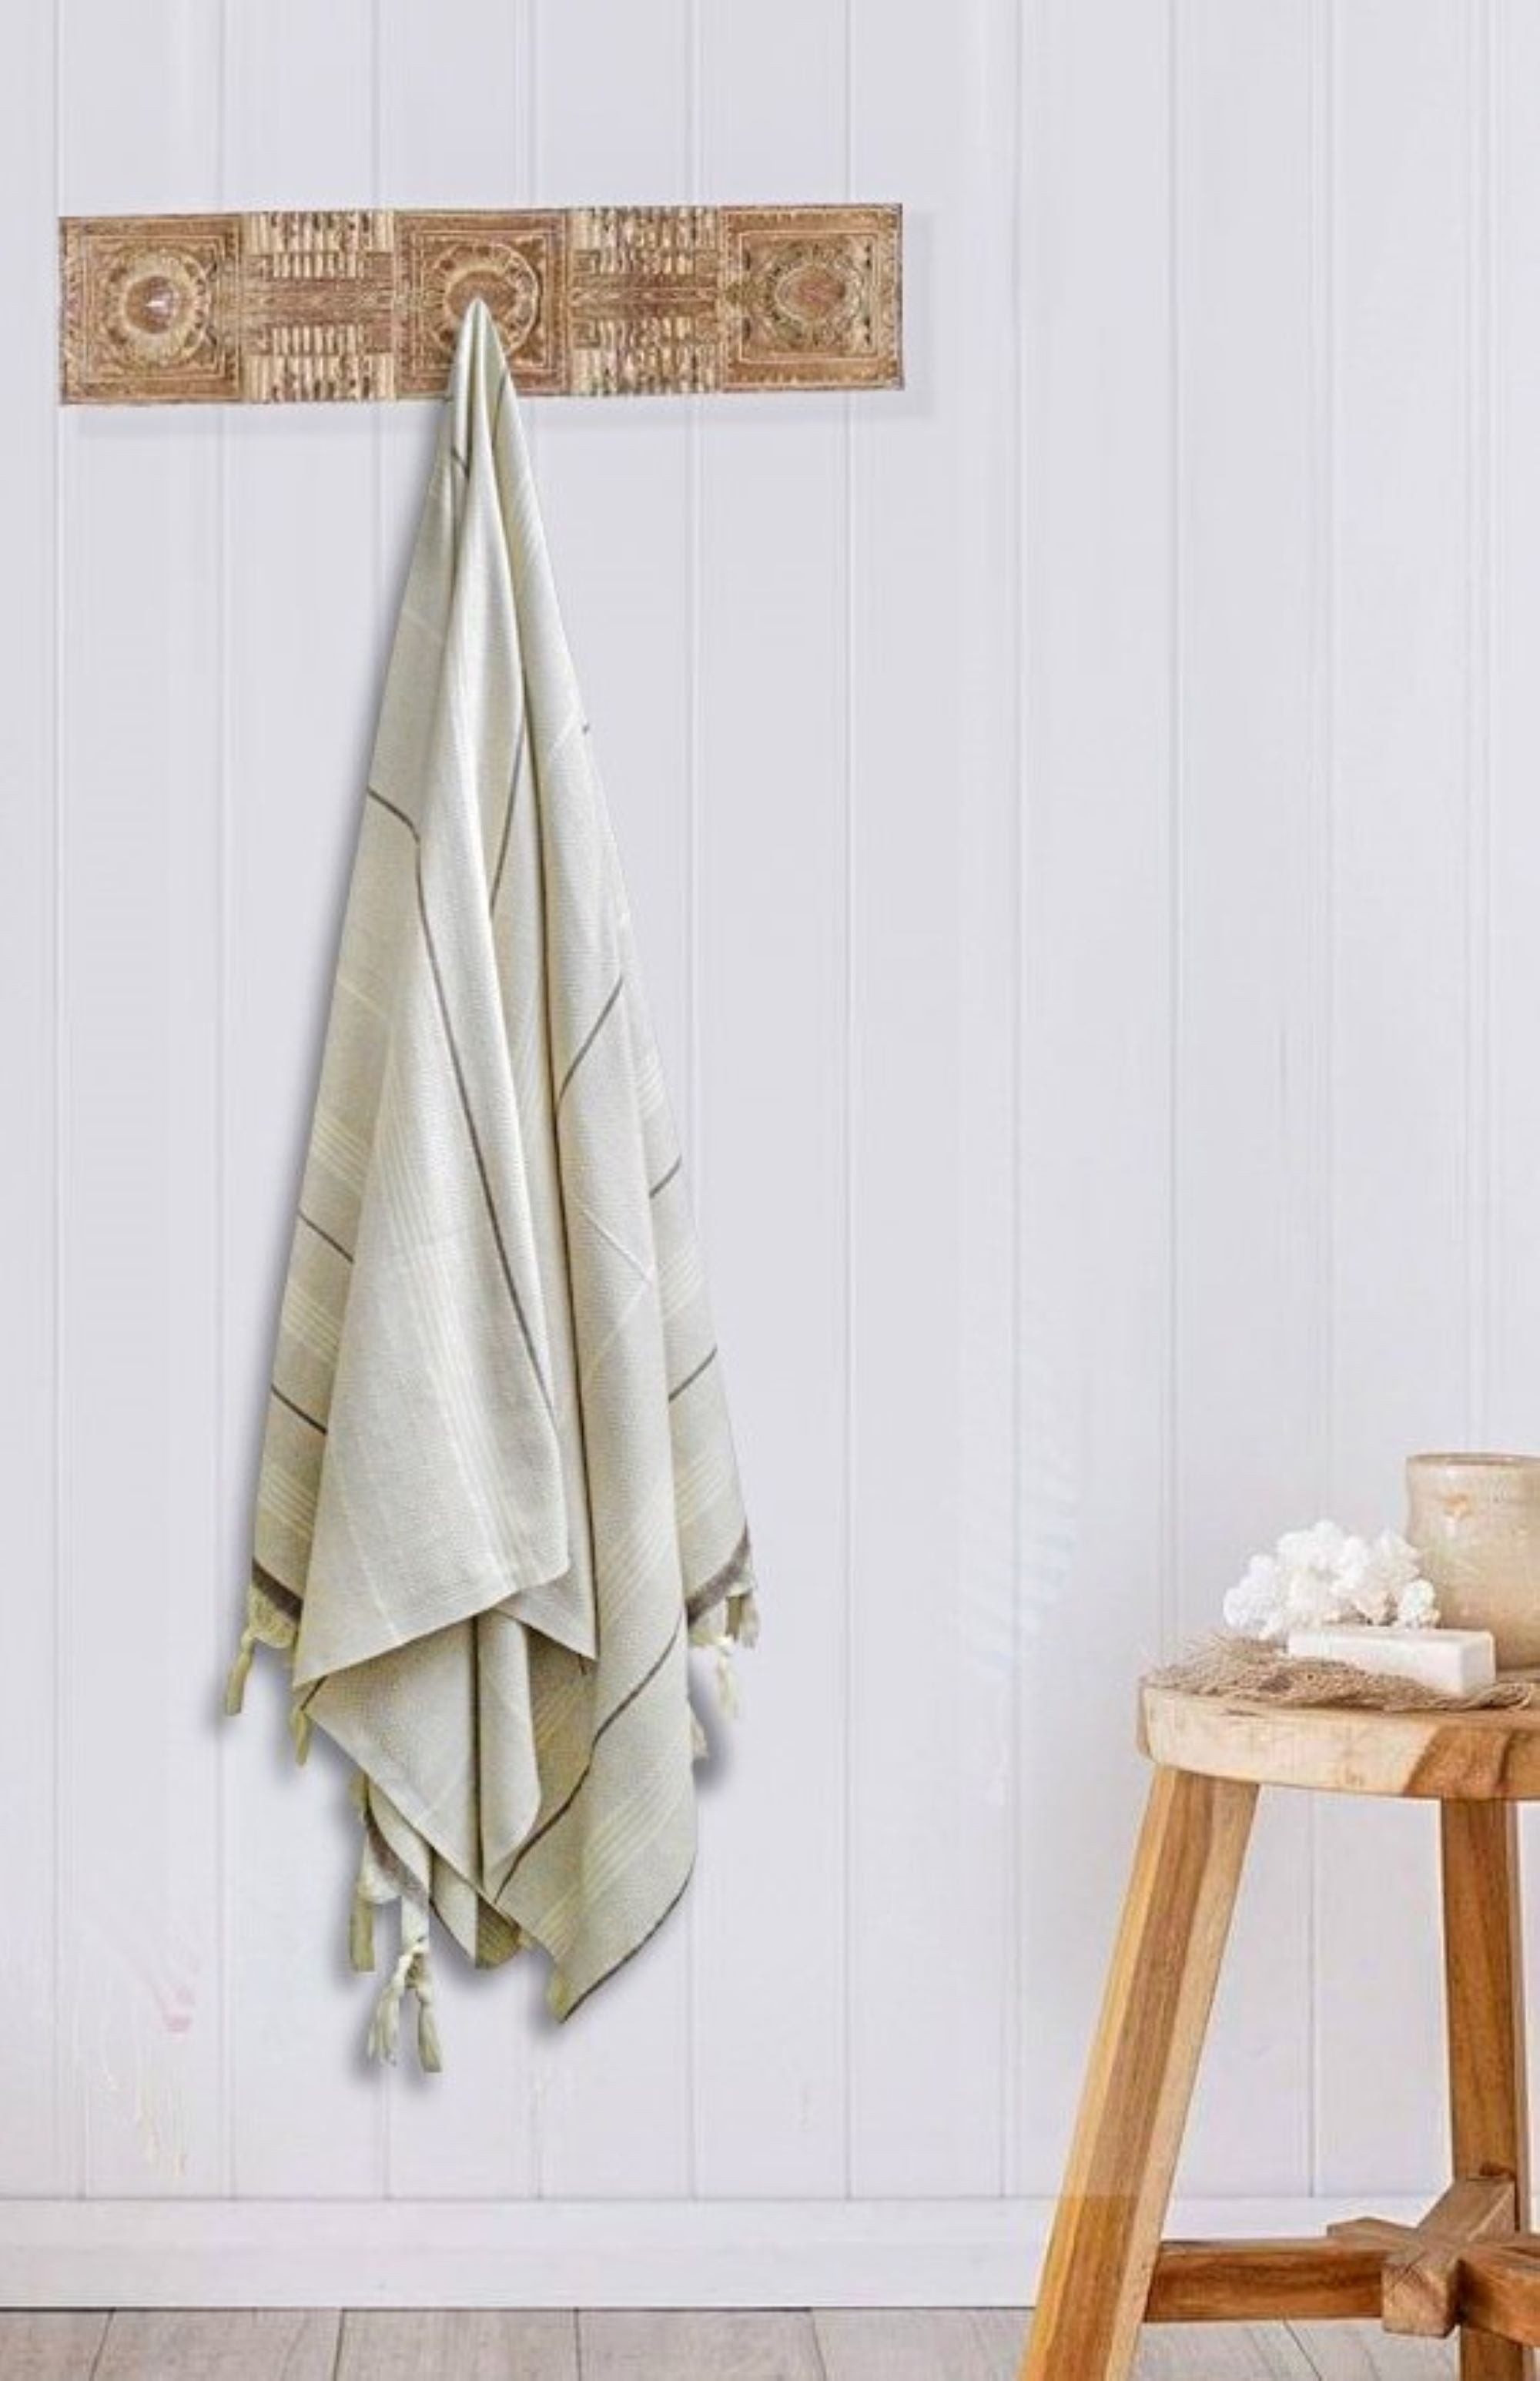 Turkish Peshtemal towel Beige/Brown, hand-embroidered, pure cotton, with a hand-knotted fringe at both ends and long stripes pattern.